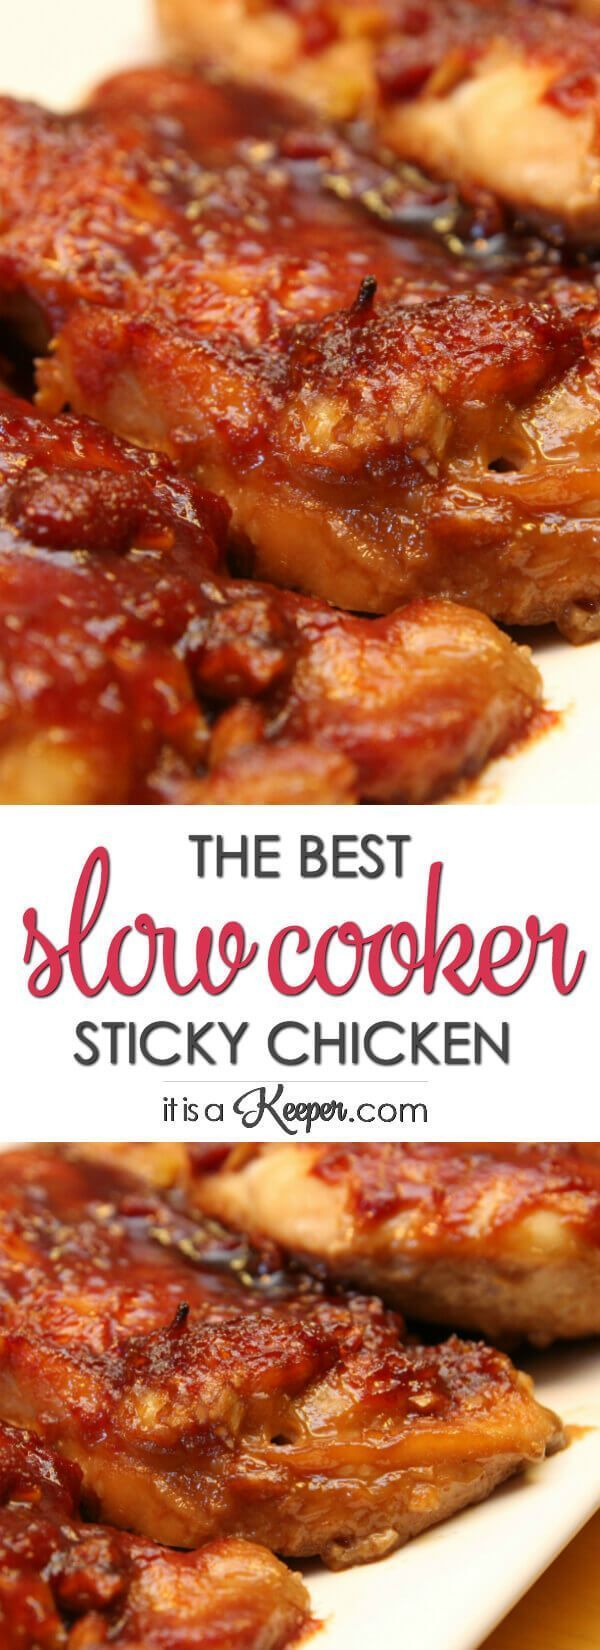 Slow Cooker Sticky Chicken - this easy recipe is one of the best crock pot recipes for chicken you will ever have